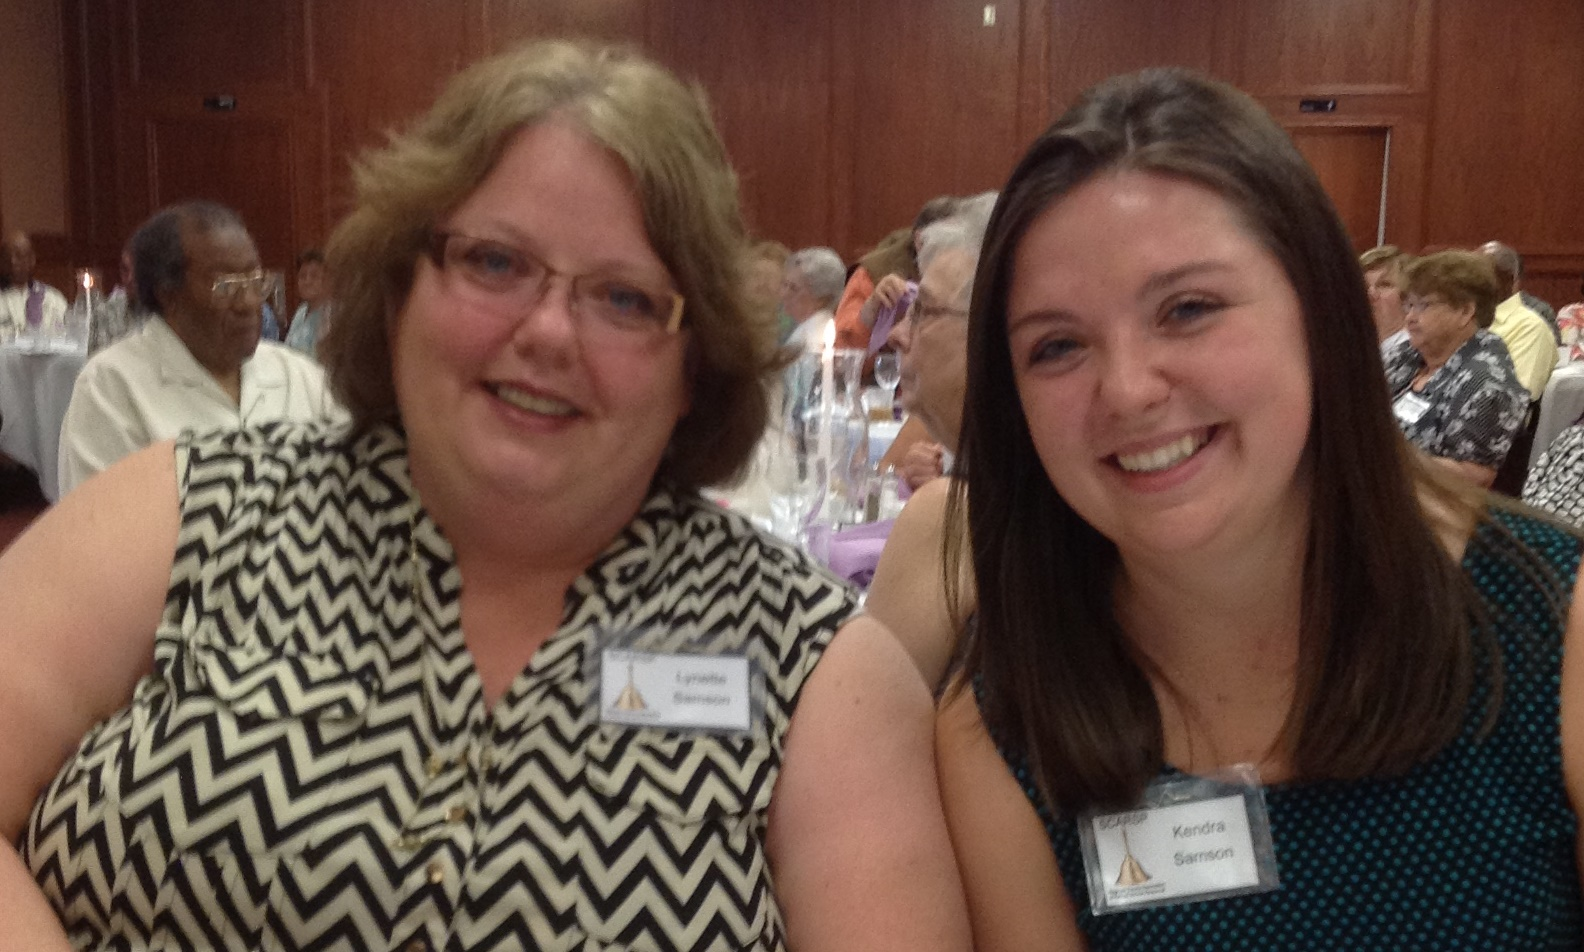 2015 Scholarship recipient Kendra Samson with her mom Lynette Samson